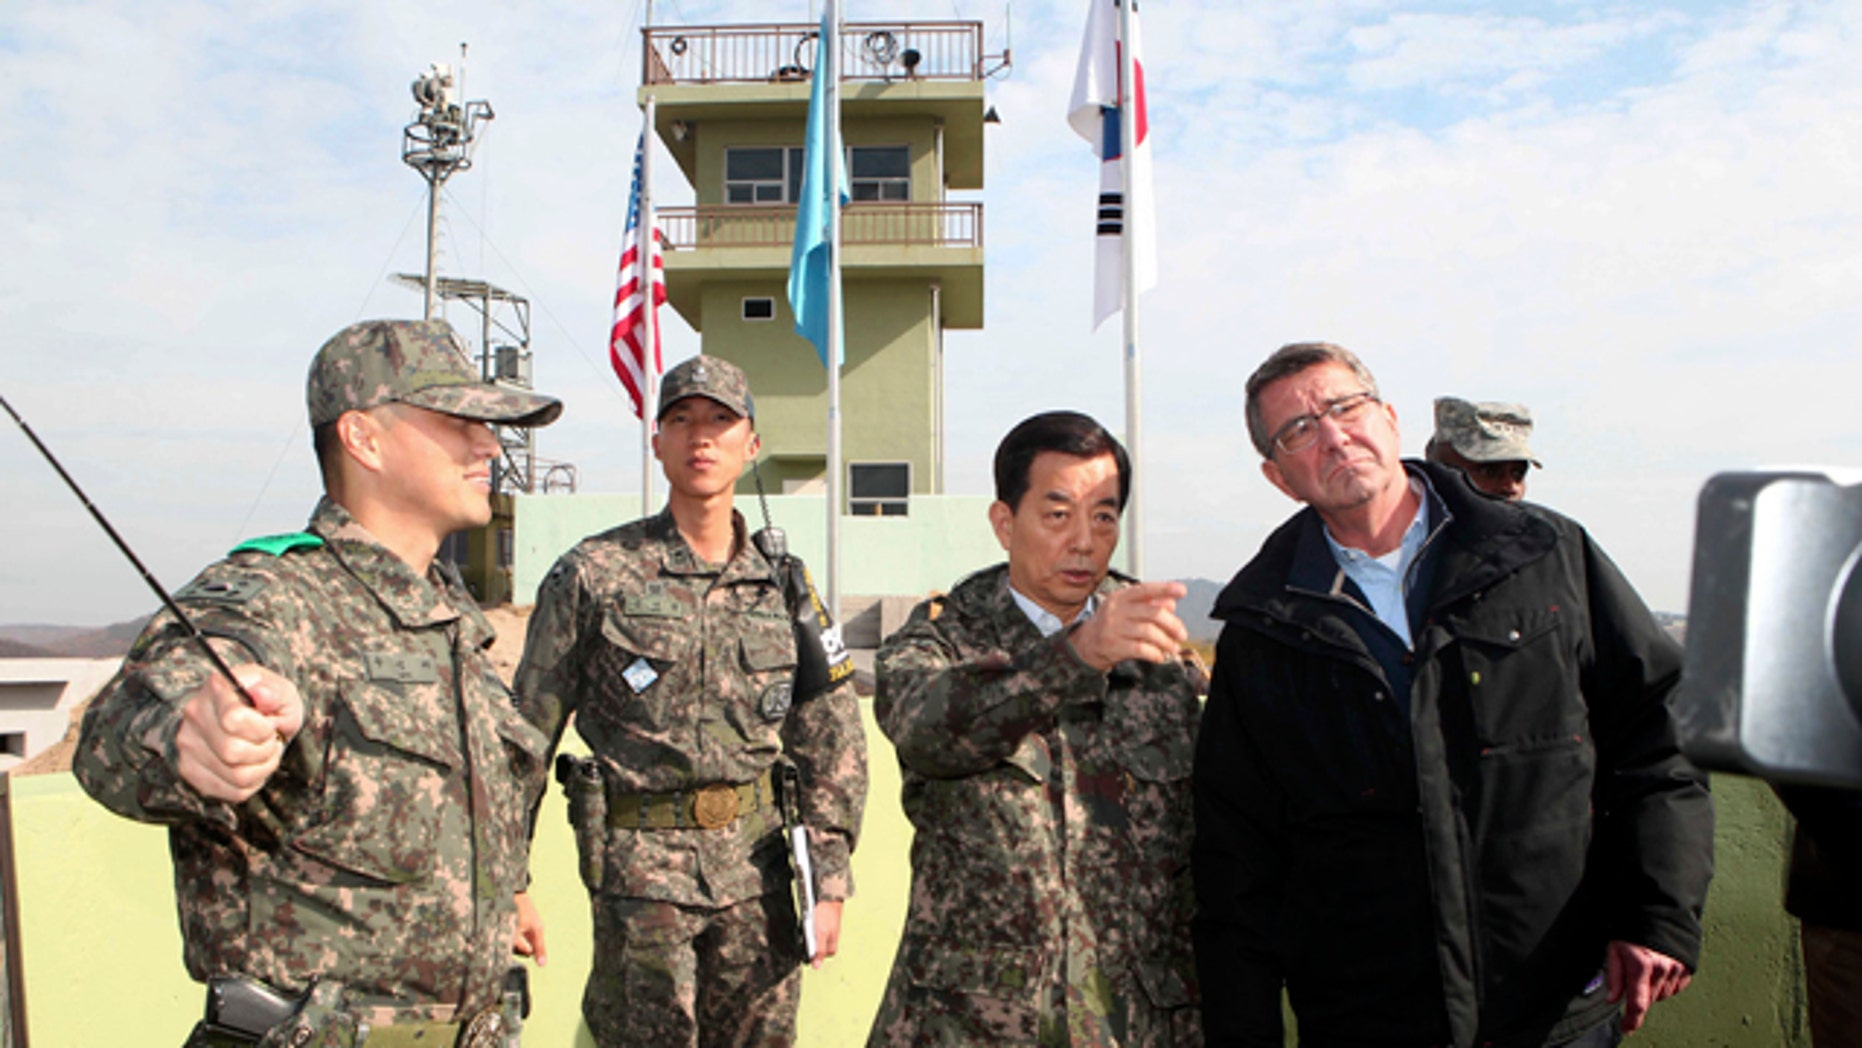 Nov. 1, 2015: U.S. Defense Secretary Ash Carter, right, and South Korean Defense Minister Han Min Koo, second from right, look towards North Korea at an observation post near the border village of Panmunjom, which has separated the two Koreas since the Korean War. (Korea Pool Photo via AP)